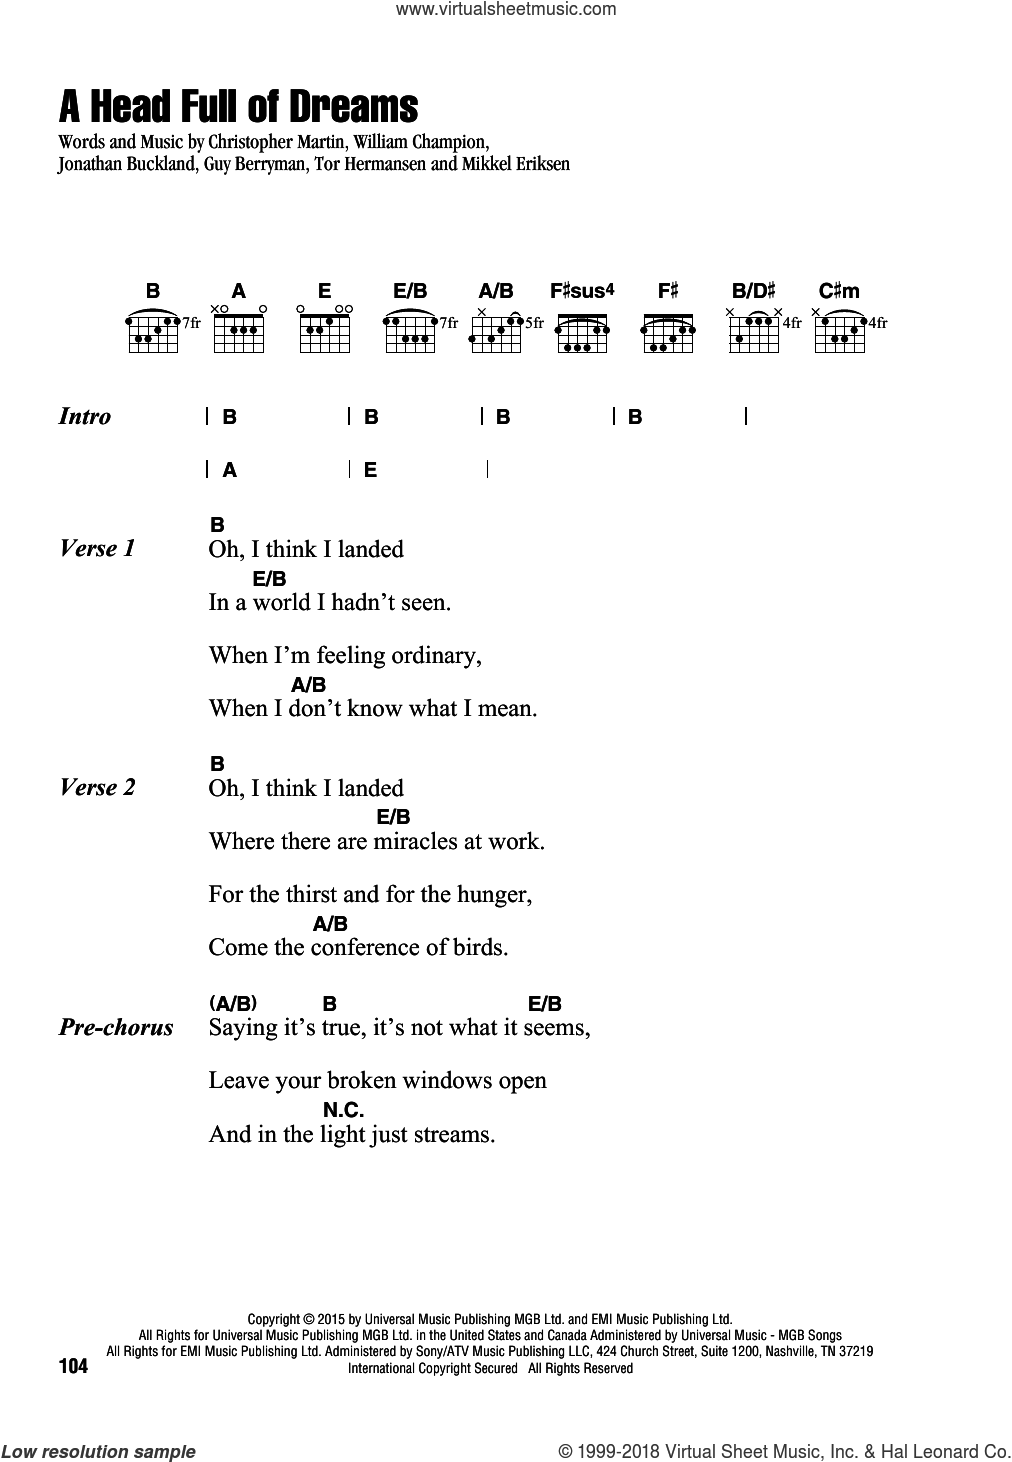 A Head Full Of Dreams sheet music for guitar (chords) by Guy Berryman, Coldplay, Christopher Martin, Jonathan Buckland, Mikkel Eriksen, Tor Erik Hermansen and William Champion, intermediate skill level